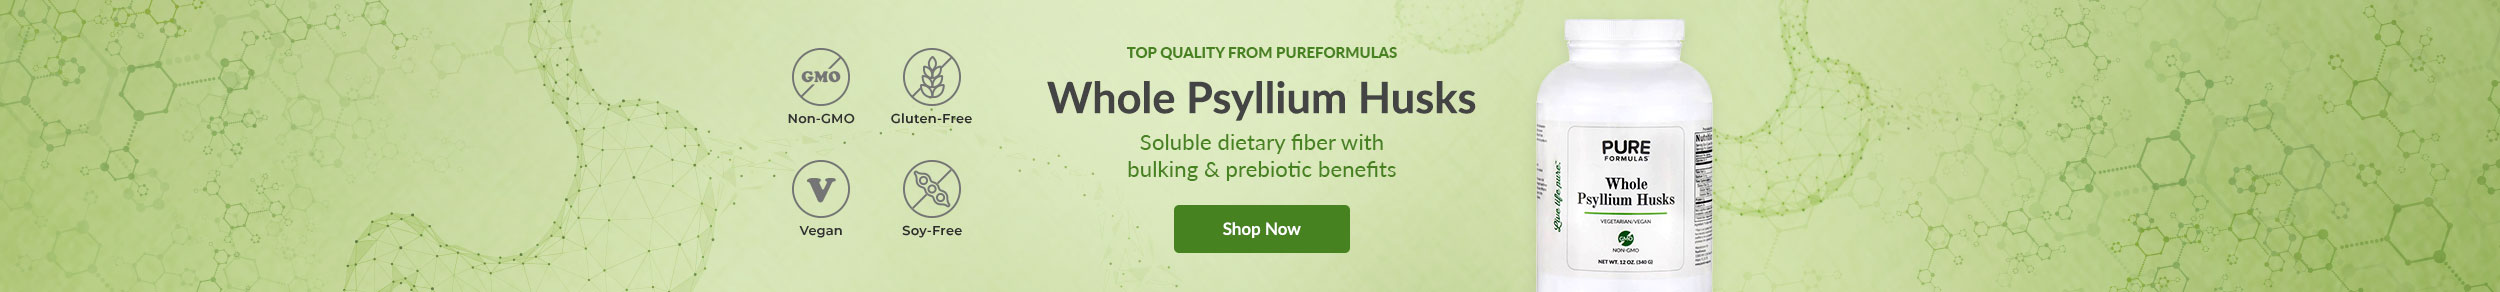 Top Quality from PureFormulas: Whole Psyllium Husks - Soluble dietary fiber with bulking & prebiotic benefits